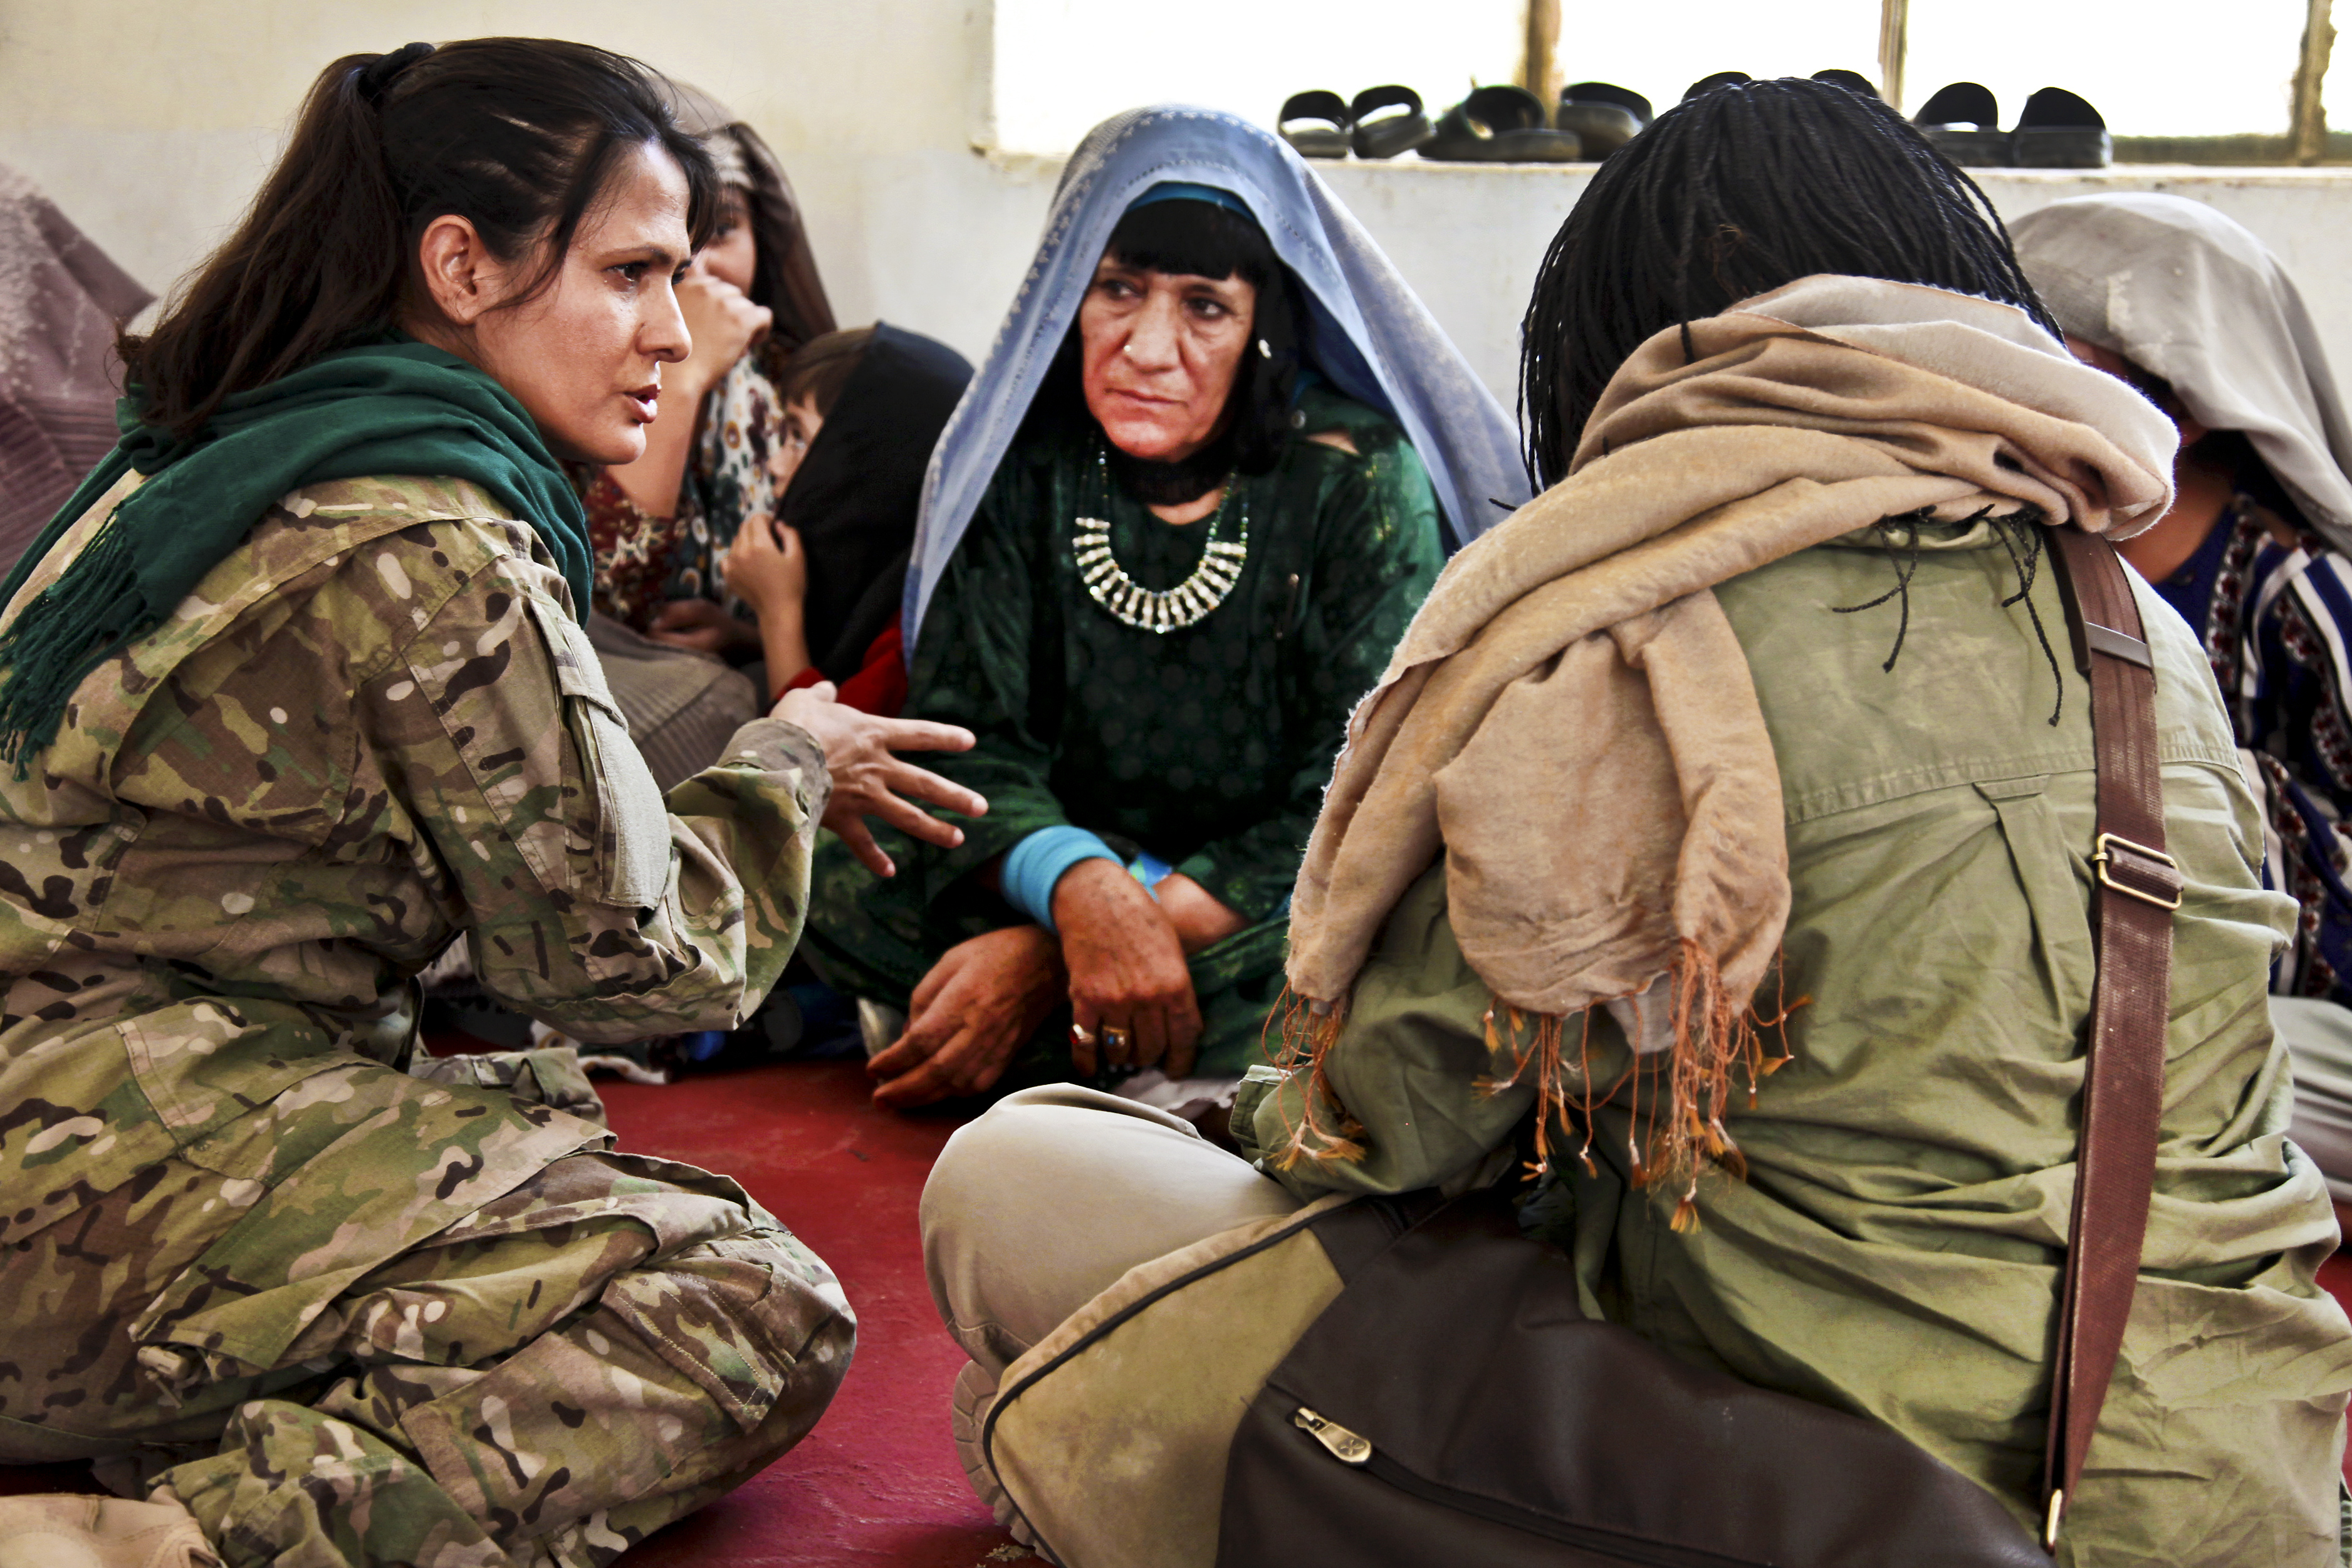 essays on womens rights in afghanistan Free essay on study of the women of afghanistan available totally free at echeatcom kaliban's violations of women's human rights in afghanistan.